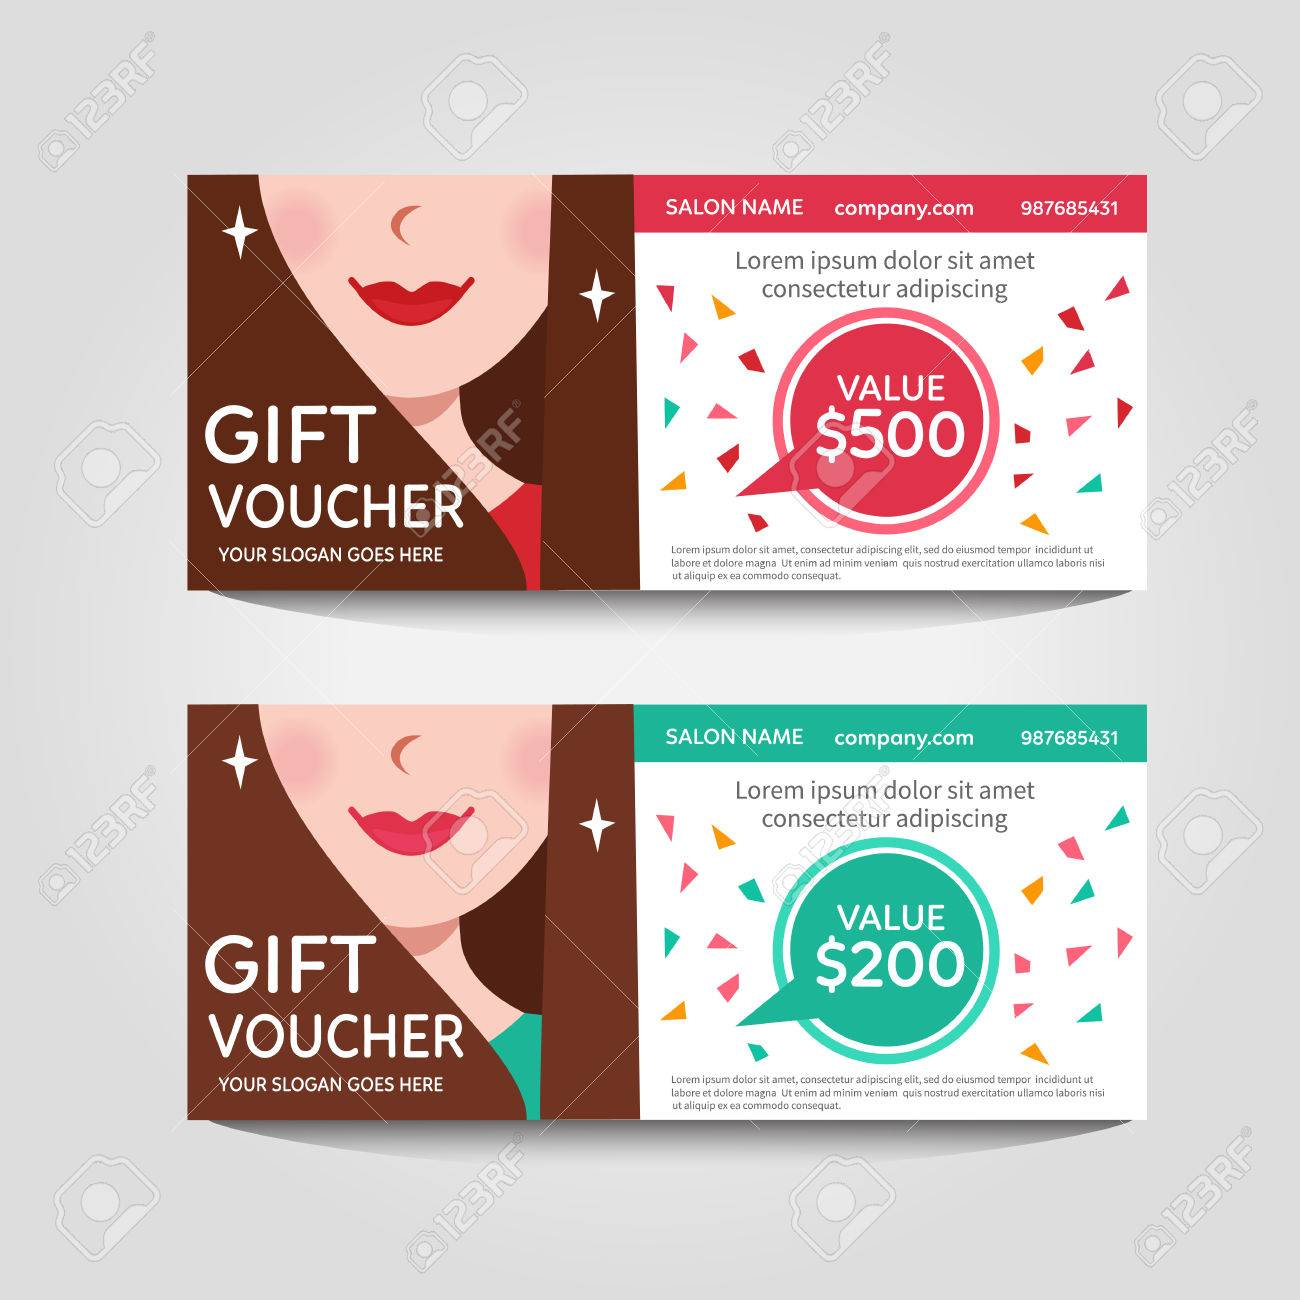 A Gift Voucher For A Beauty Salon Vector Flat Voucher Royalty Free Cliparts Vectors And Stock Illustration Image 58018096